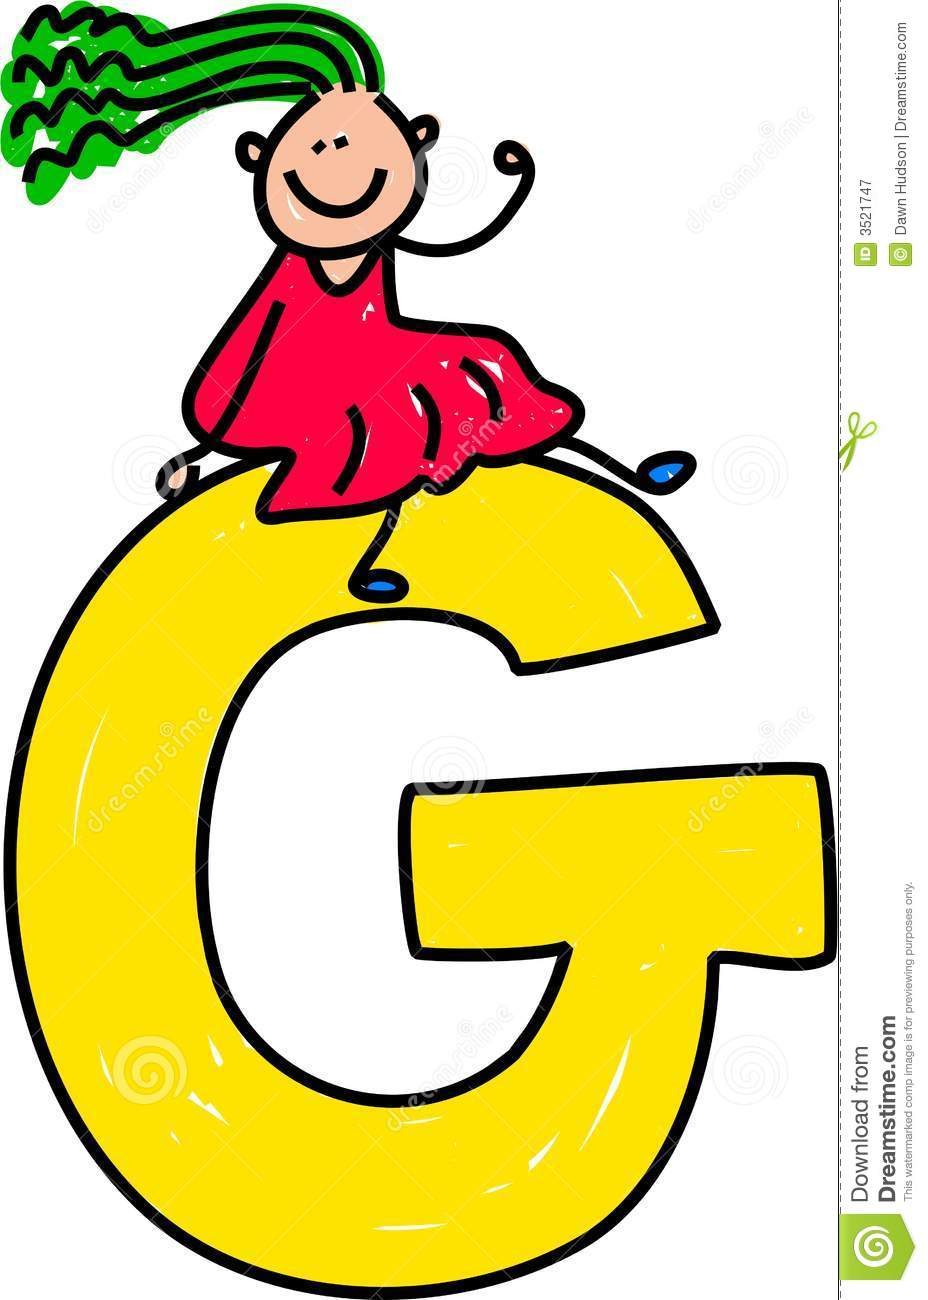 letter g girl royalty free stock photography image 3521747 letter j clipart jpeg letter j clip art free printable